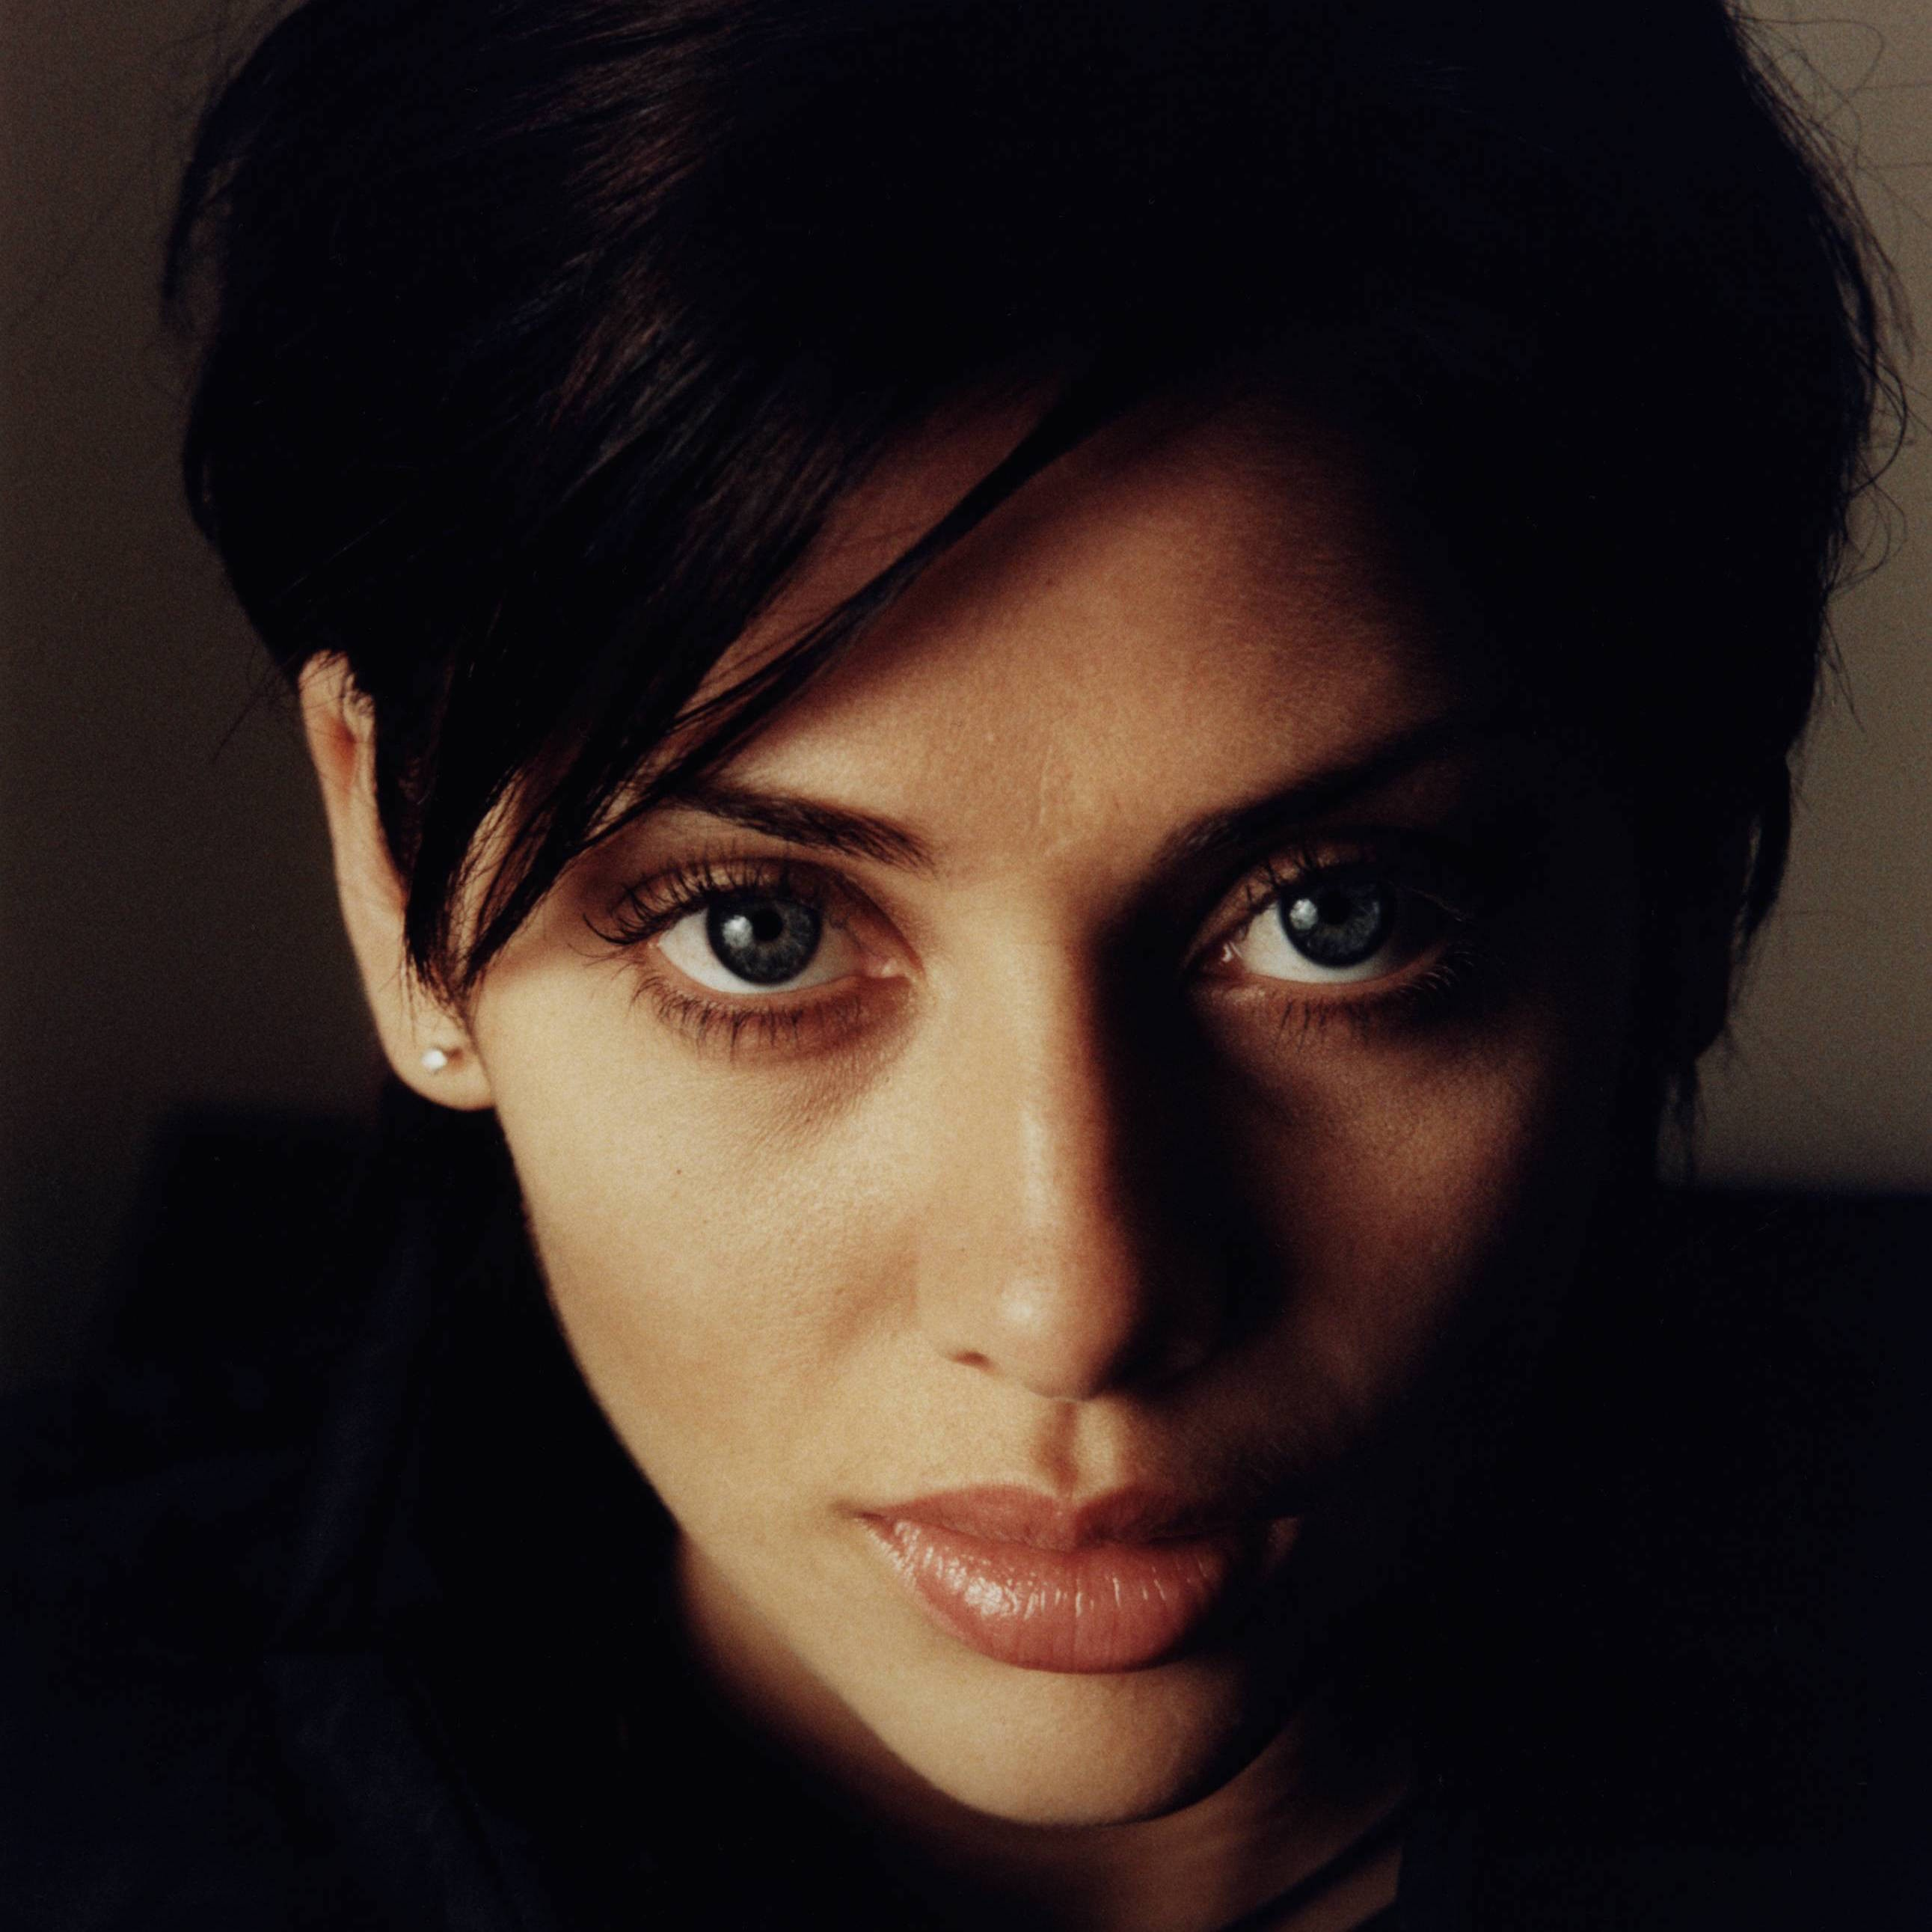 Natalie Imbruglia's 'Torn': The History - Stereogum